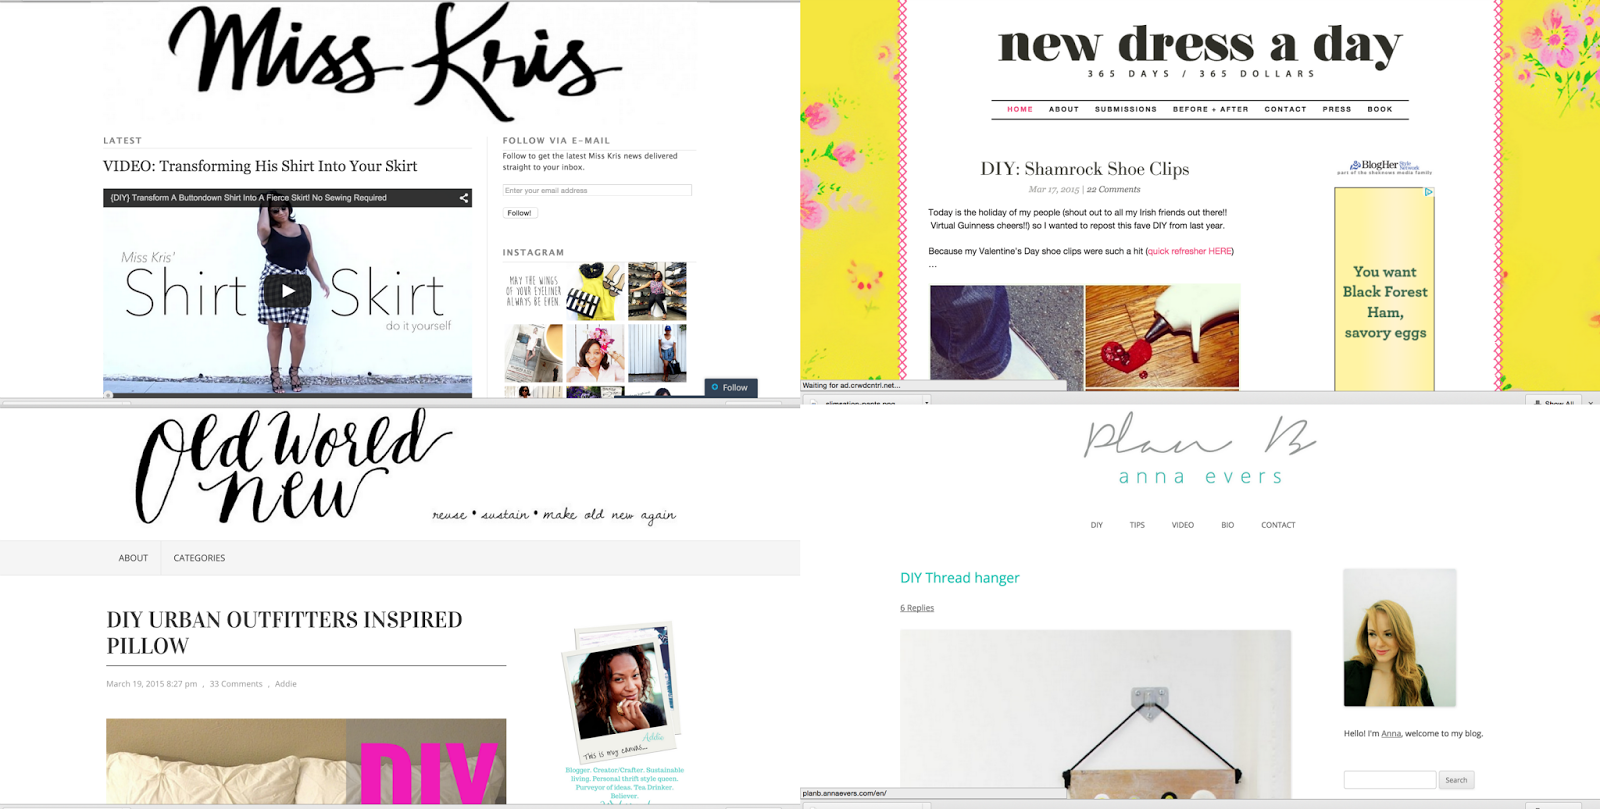 refashion bloggers miss kris turner, new dress a day, old world new, plan b anna evers